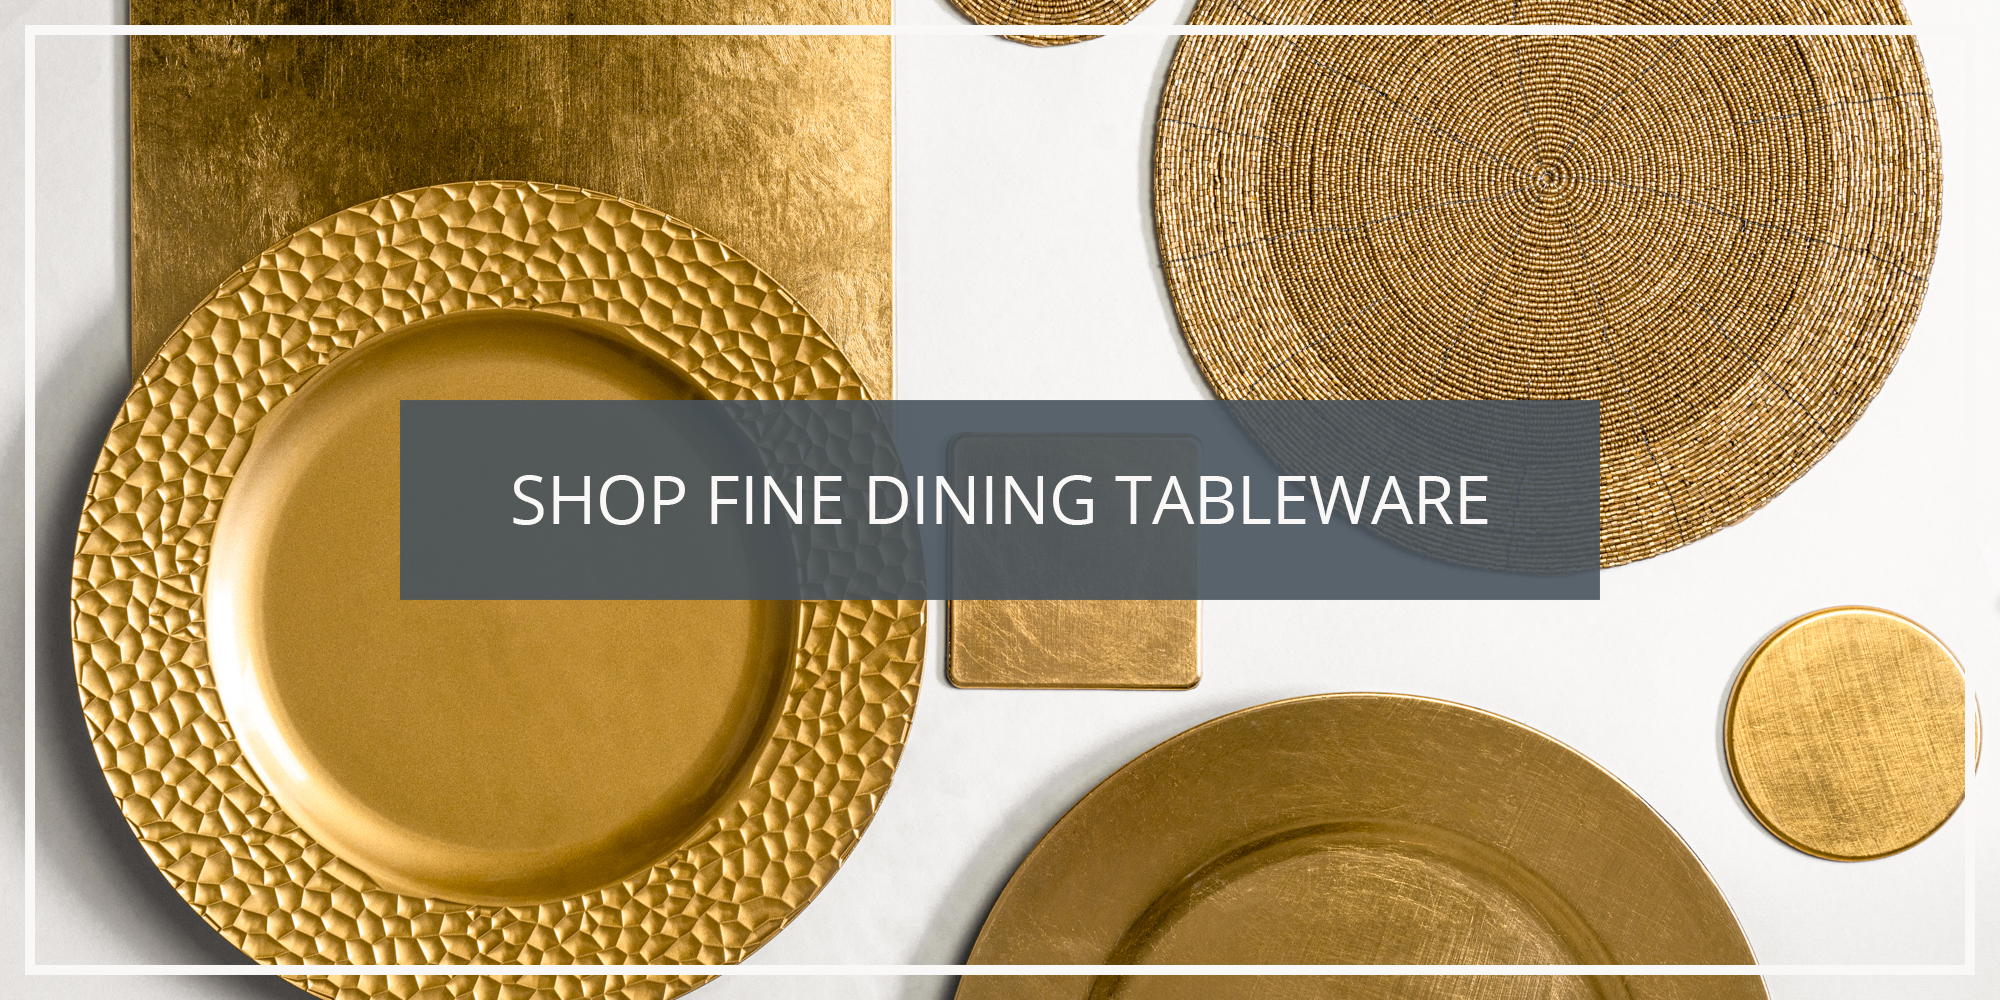 Shop the Argon Tableware Fine Dining Collection of Charger Plates Coasters and Napkin Rings